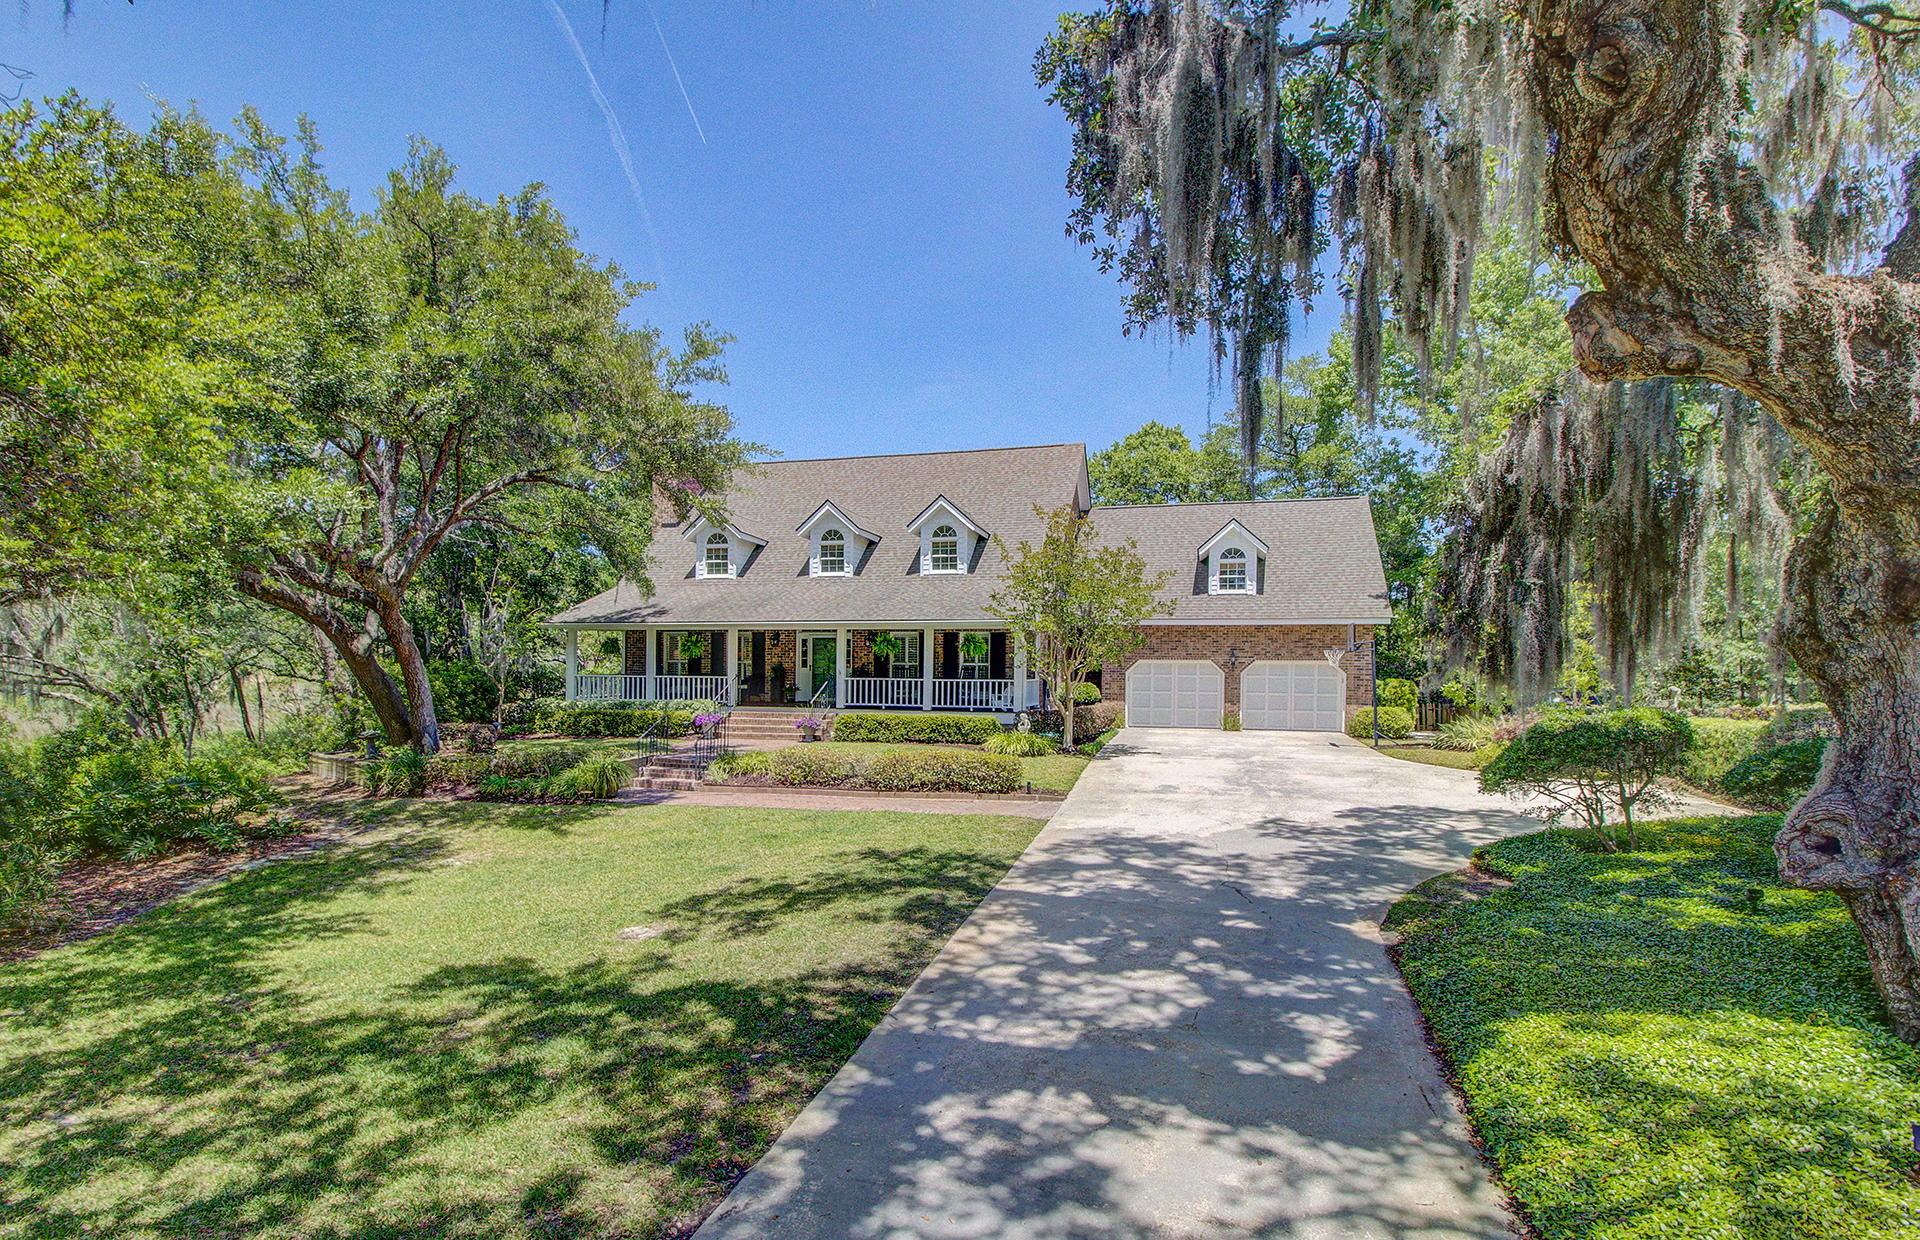 Indigo Point Homes For Sale - 90 Indigo Point, Charleston, SC - 29